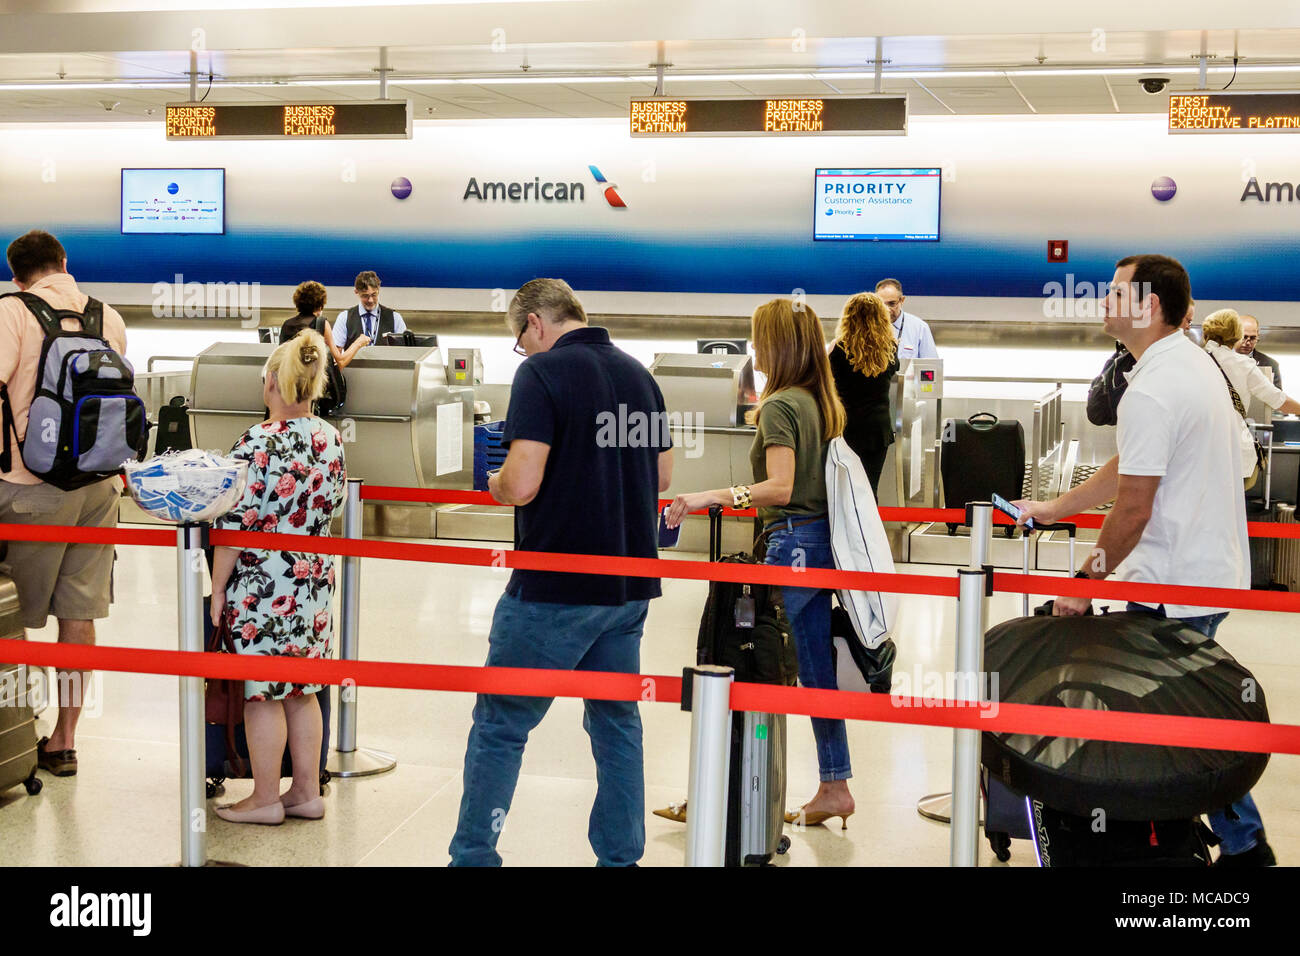 845d4c0c927 Florida Miami Miami International Airport MIA terminal American Airlines  ticket counter priority customers line queue man